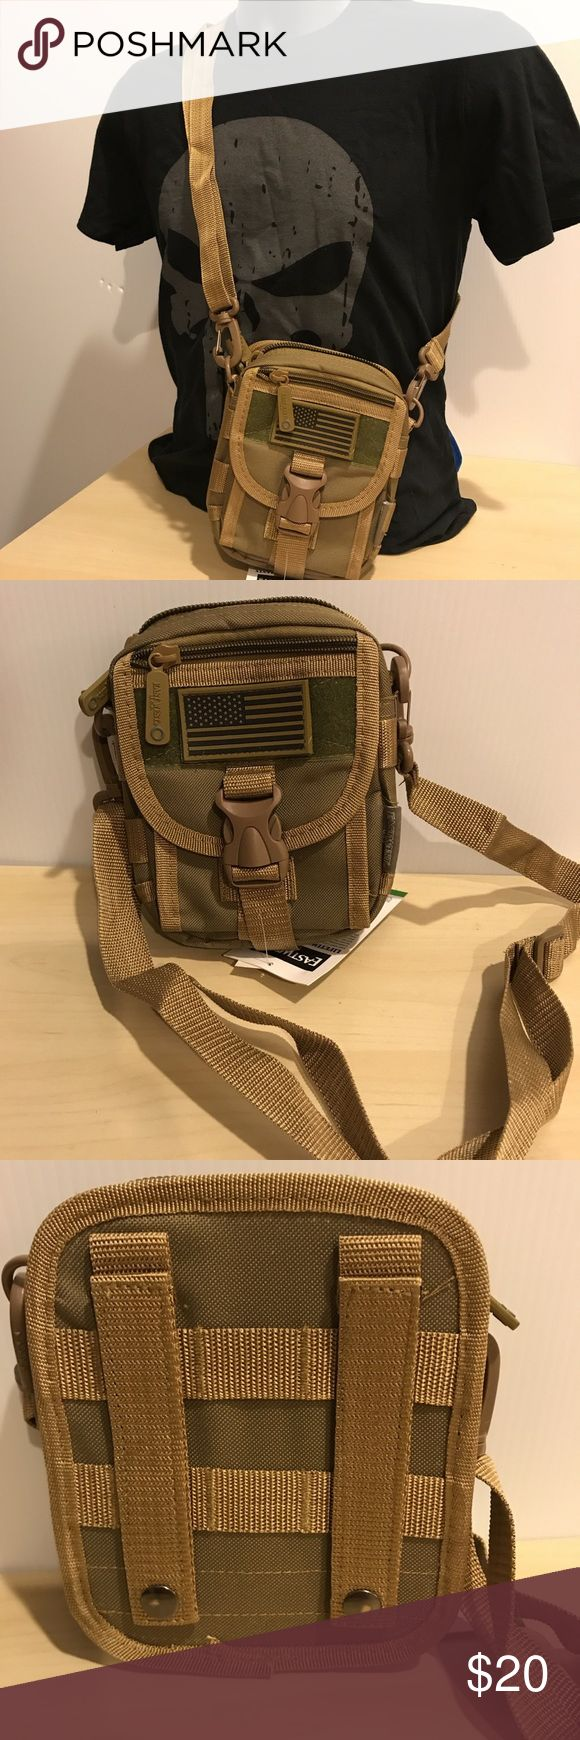 Tactical Molle Pouch Waist Belt Utility Gadget Bag Tactical Molle Pouch Waist Belt Utility Gadget Bag With its versatile design, the Tactical Utility Molle Waist Belt Pouch with Straps – Tan can be worn as a waist bag, shoulder bag, messenger bag, or chest bag, or attached to a larger gear bag for modular storage… Bags Messenger Bags